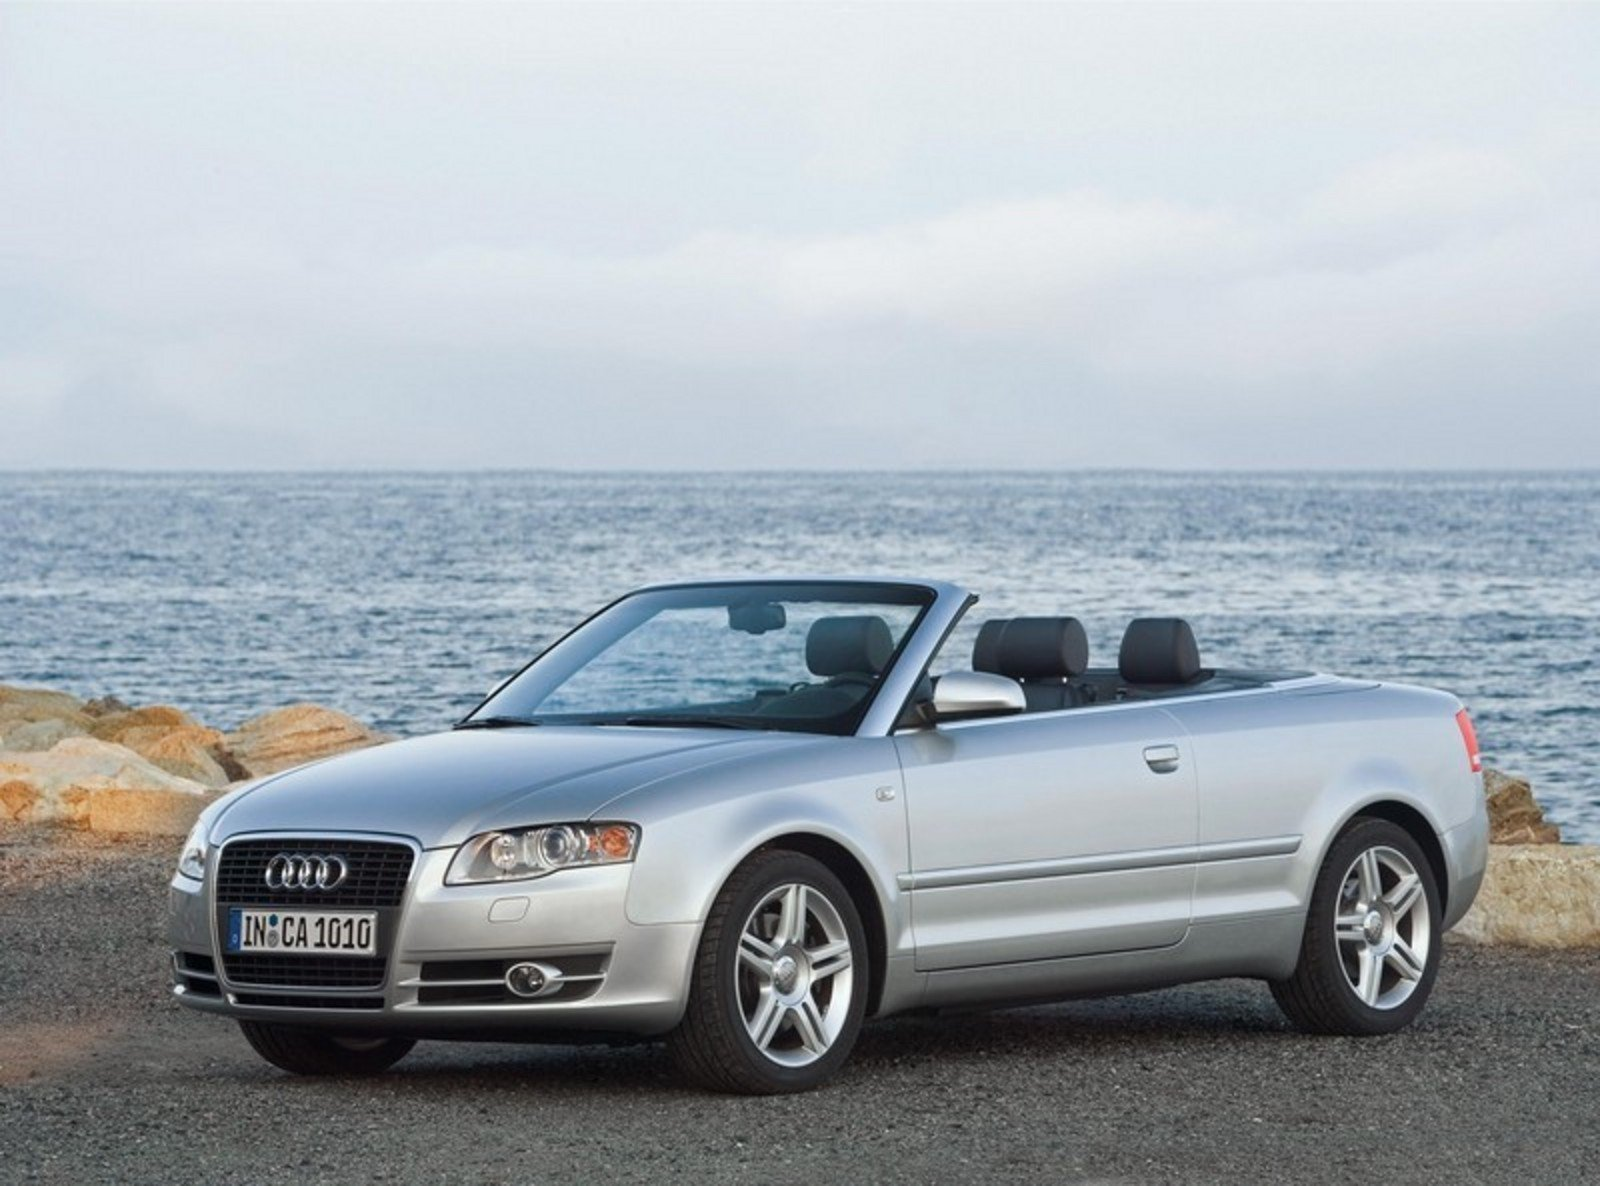 2007 audi a4 convertible picture 50254 car review top speed. Black Bedroom Furniture Sets. Home Design Ideas